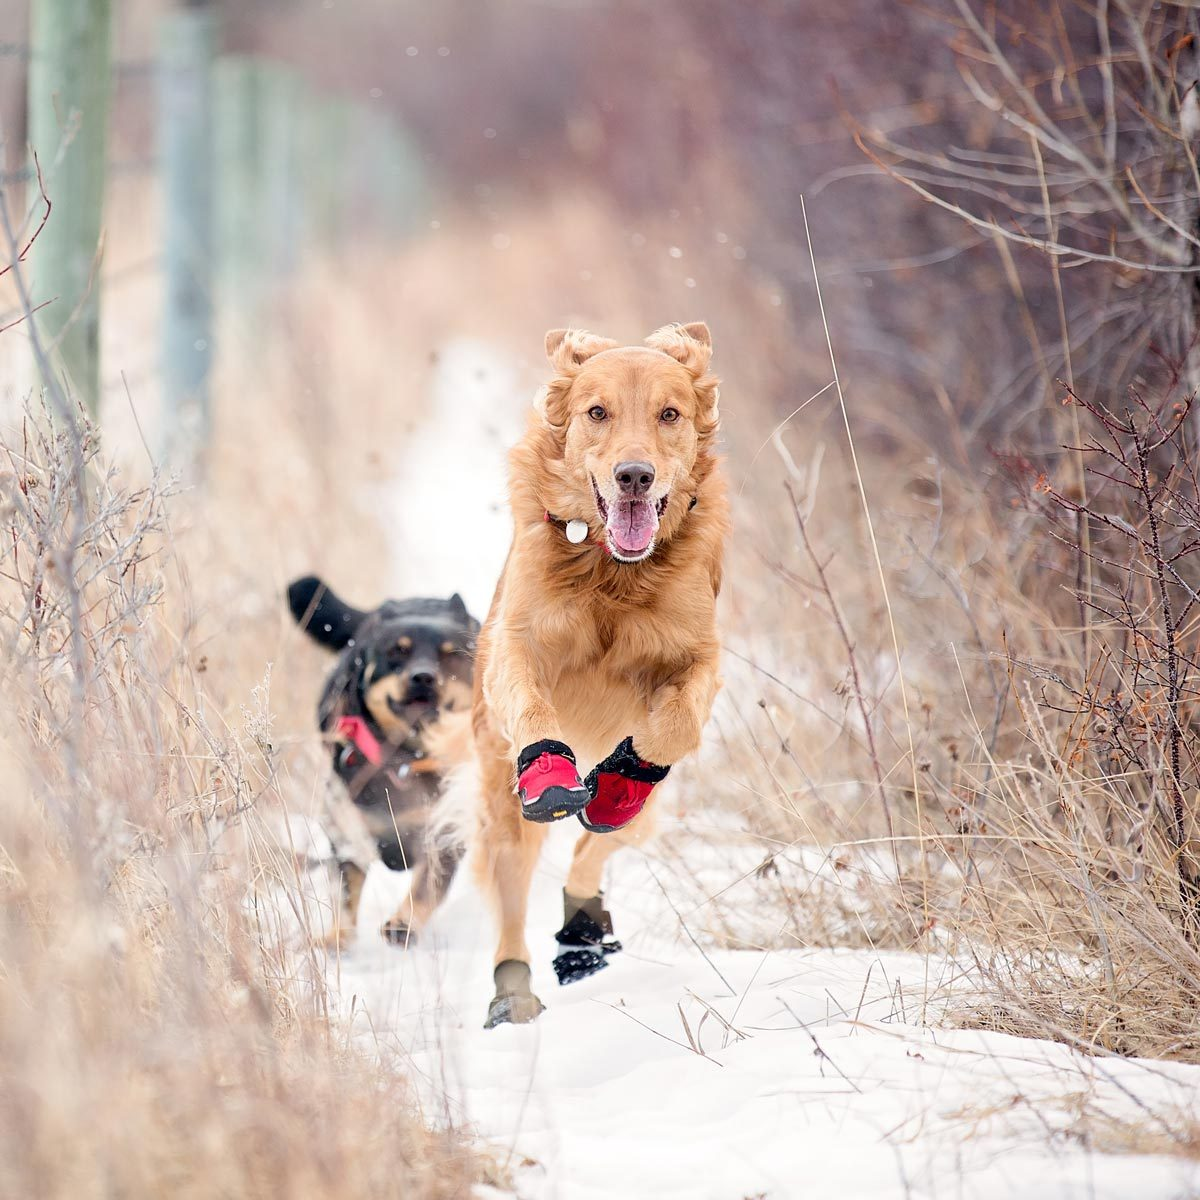 5 Ways To Protect Your Pet's Paws In Cold Weather